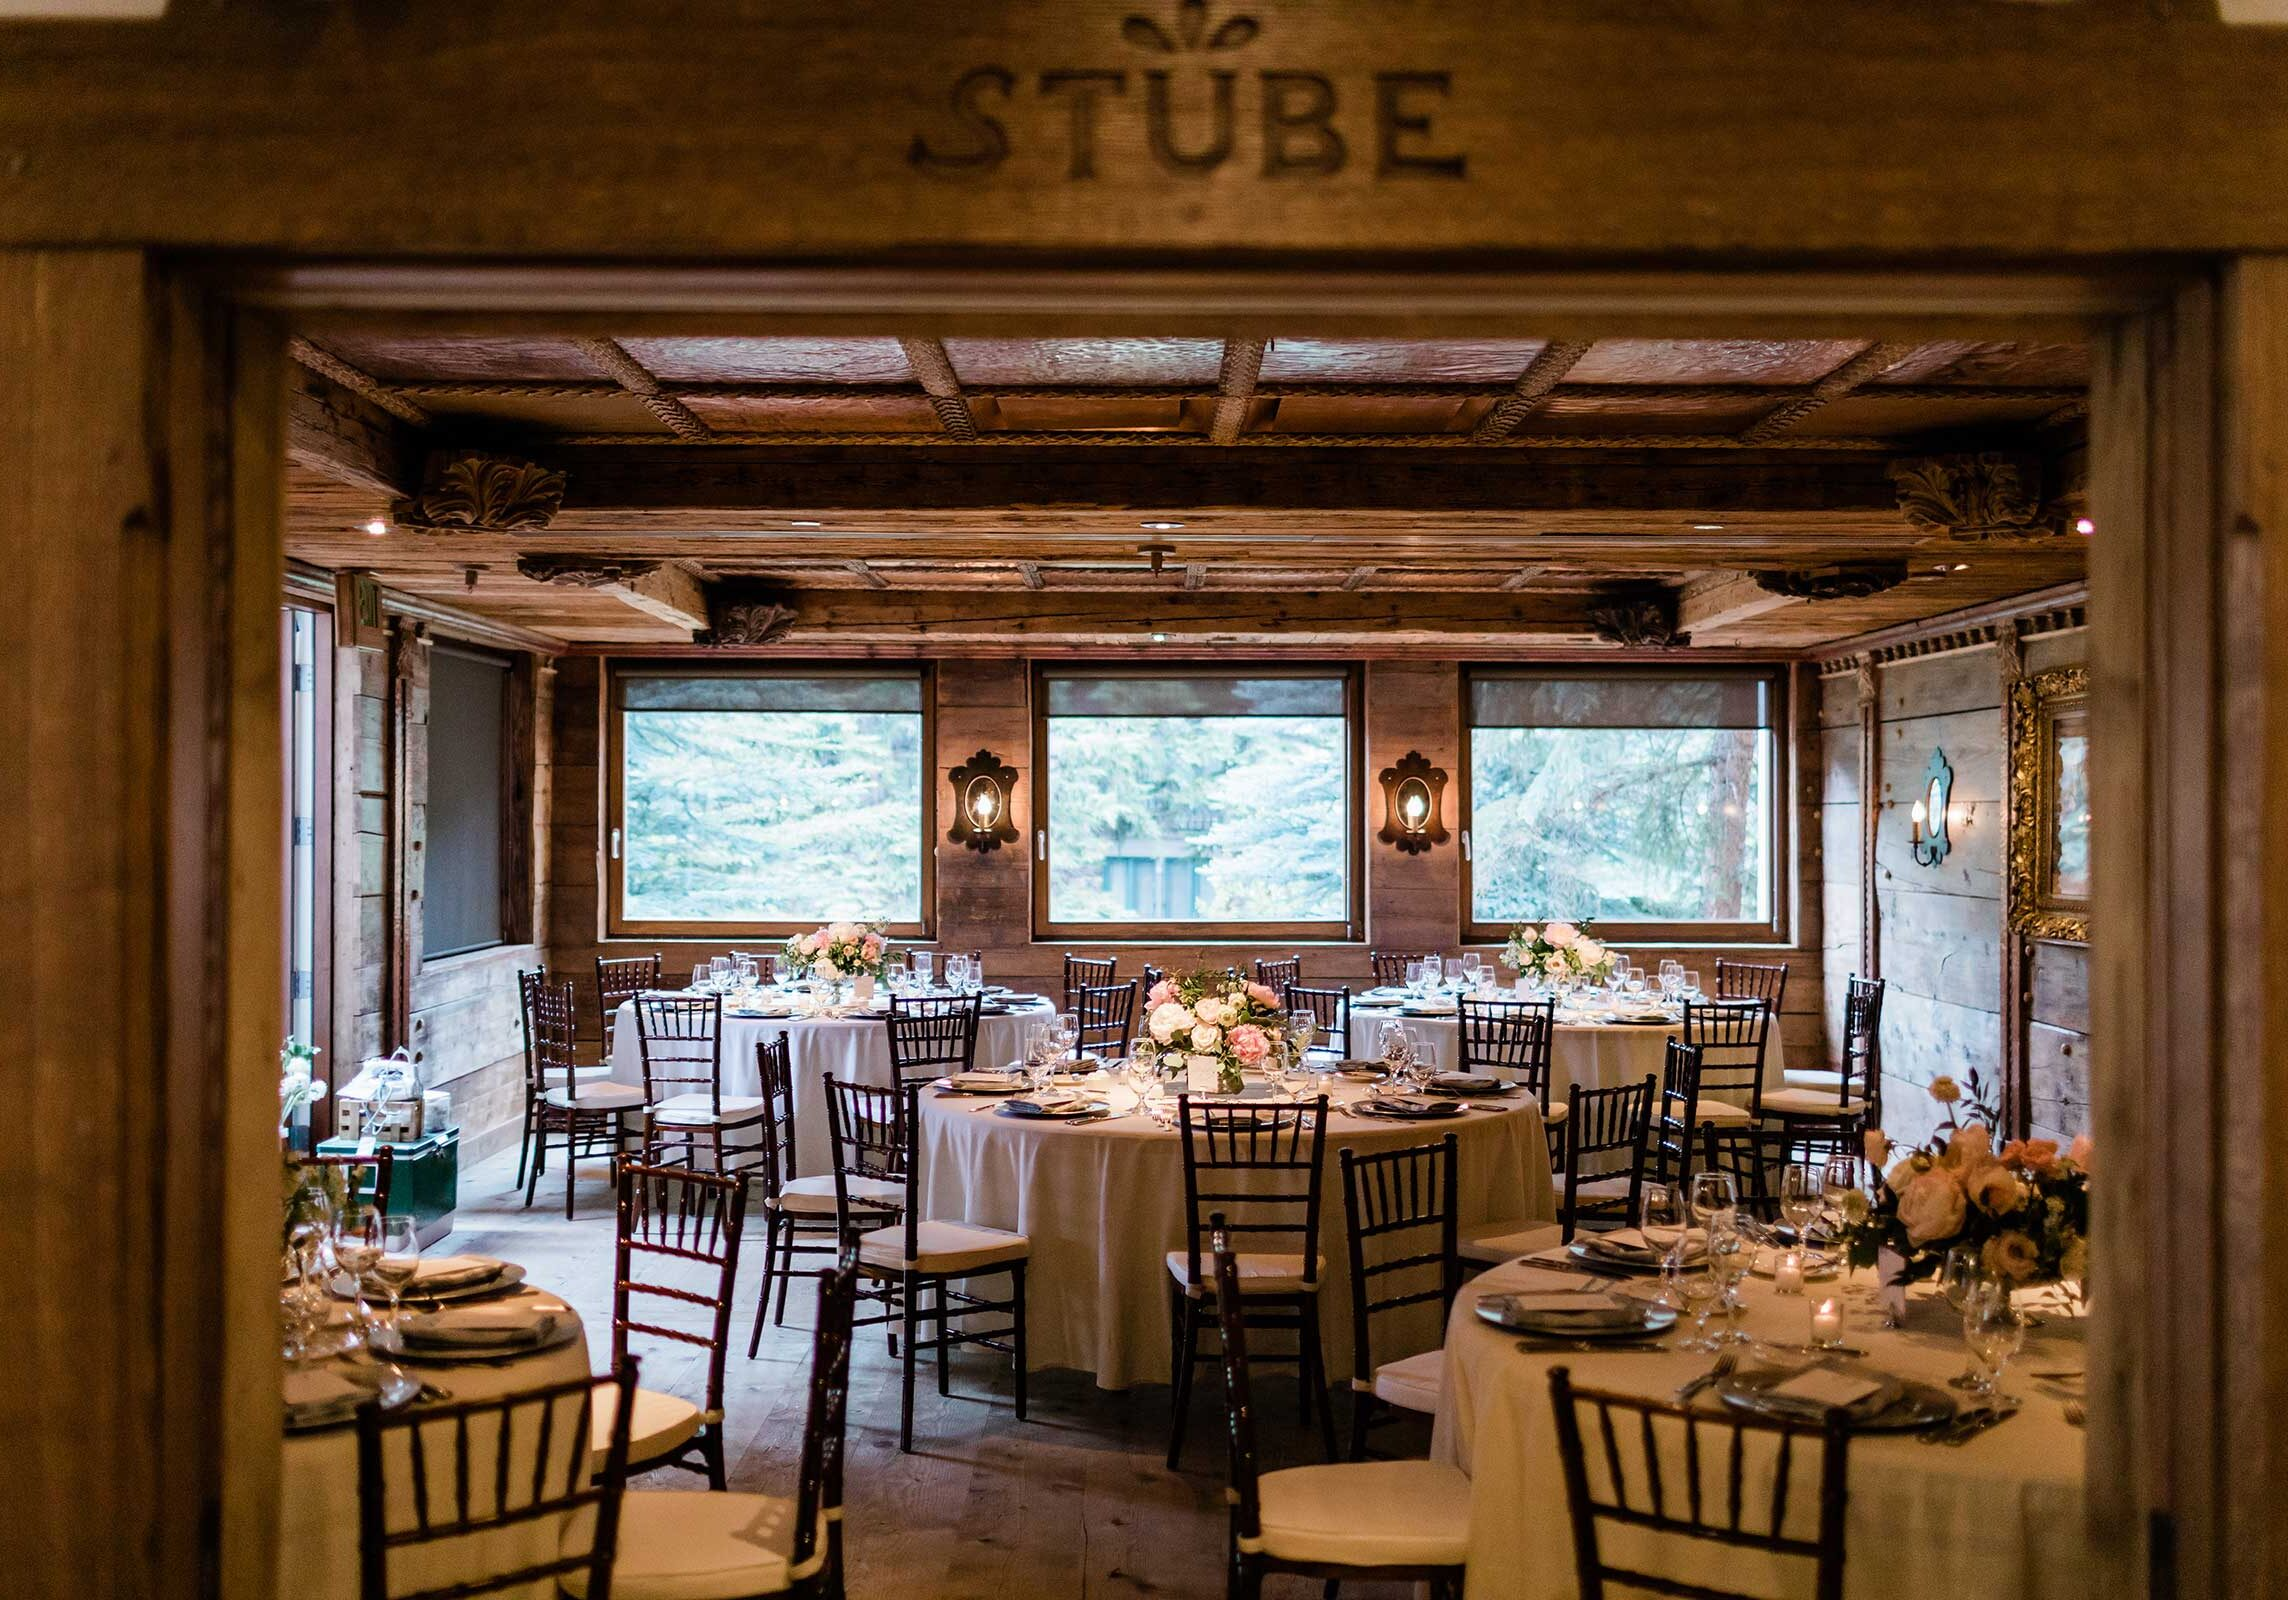 Room with wooden walls, and tables with centerpieces and placesettings